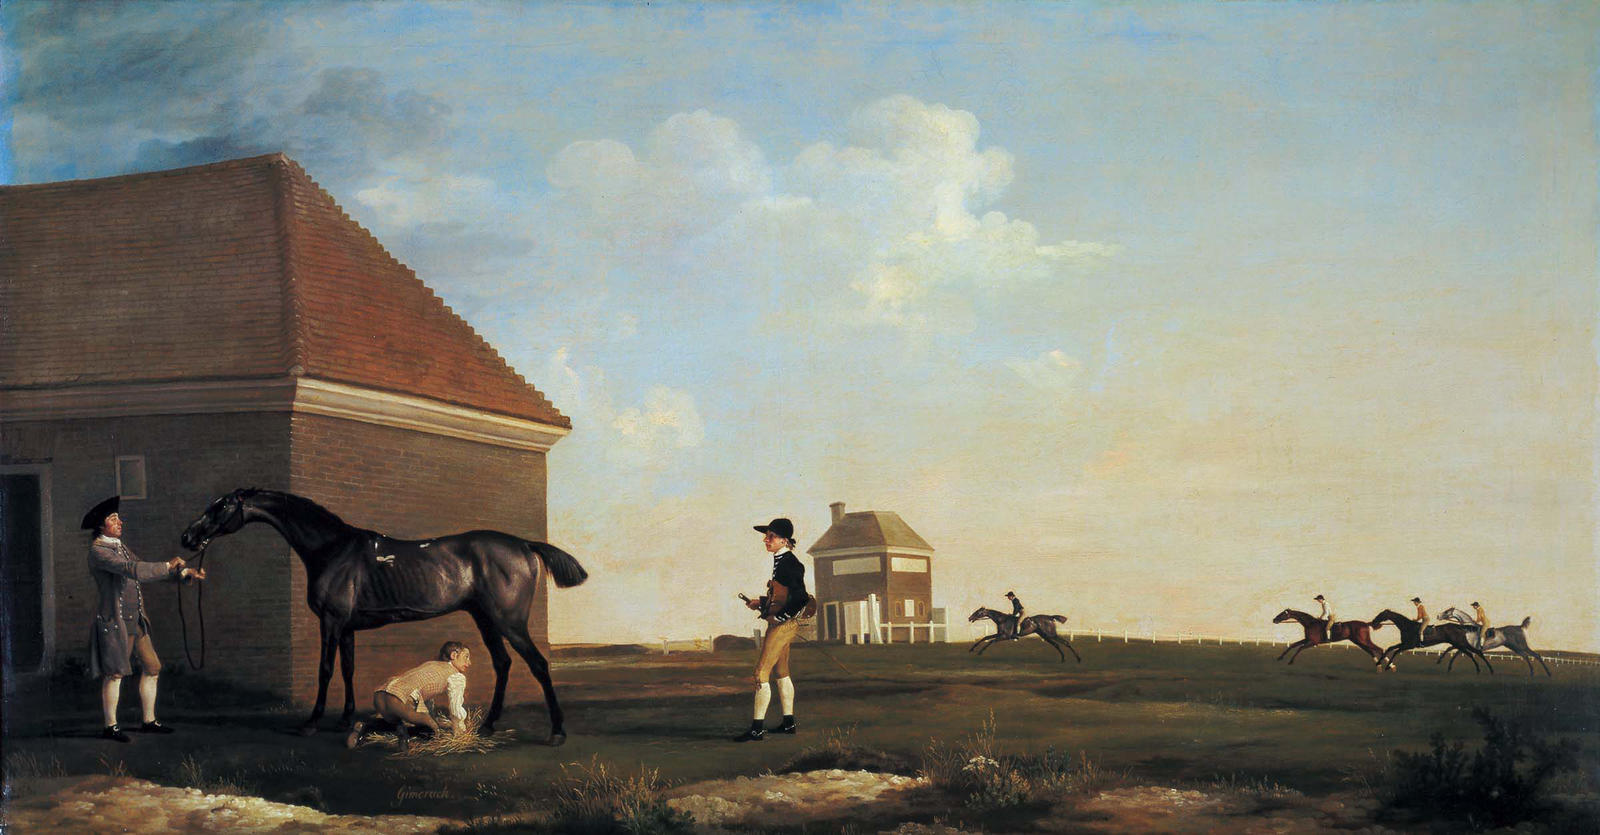 George Stubbs, Gimcrack on Newmarket Heath, with a Trainer, a Stable-Lad, and a Jockey, 1765, oil on canvas, Commissioned by Lord Bolingbroke, The Woolavington Collection, Photo by John Webb